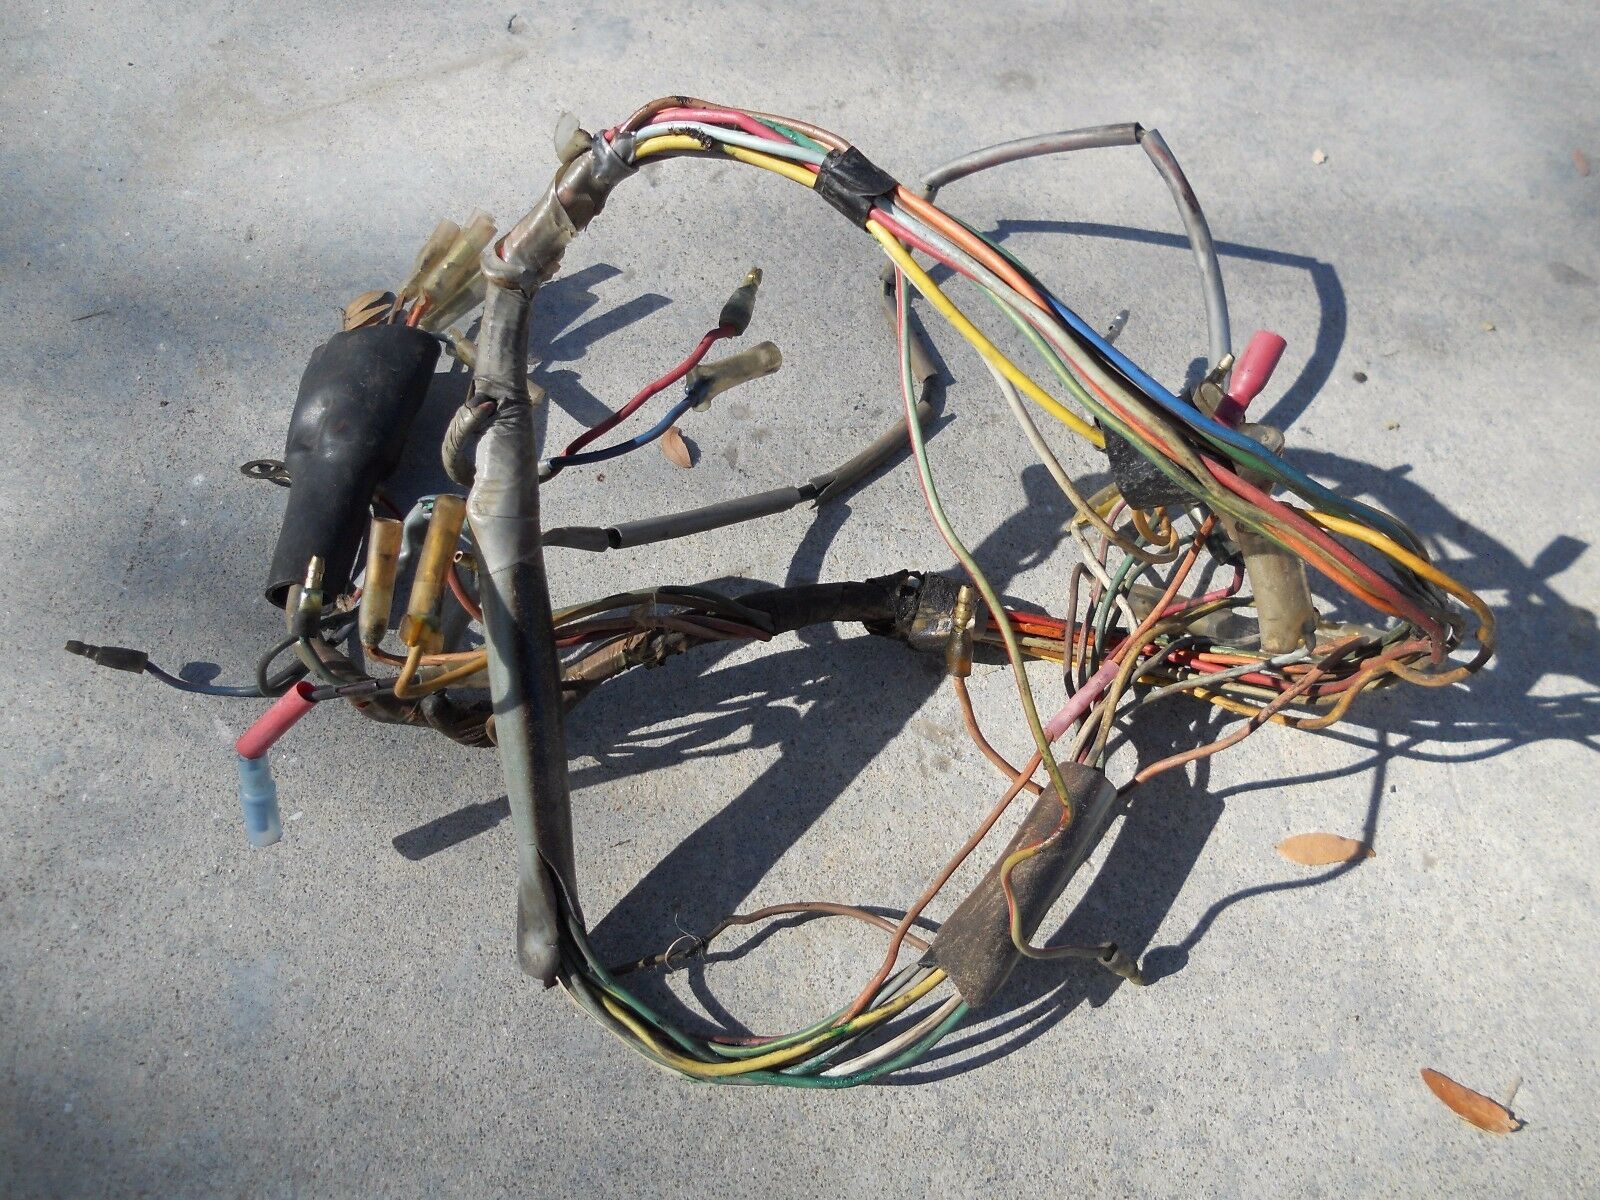 1971 HONDA CT90 #1004 Wiring Harness - £18.87 | PicClick UK on ct70 wiring harness, cx500 wiring harness, cr125 wiring harness, trx90 wiring harness, cb750 wiring harness, cb550k wiring harness, sl350 wiring harness, cb160 wiring harness, gl1000 wiring harness, cb400f wiring harness, cb750k wiring harness, cb125s wiring harness, cb360 wiring harness,